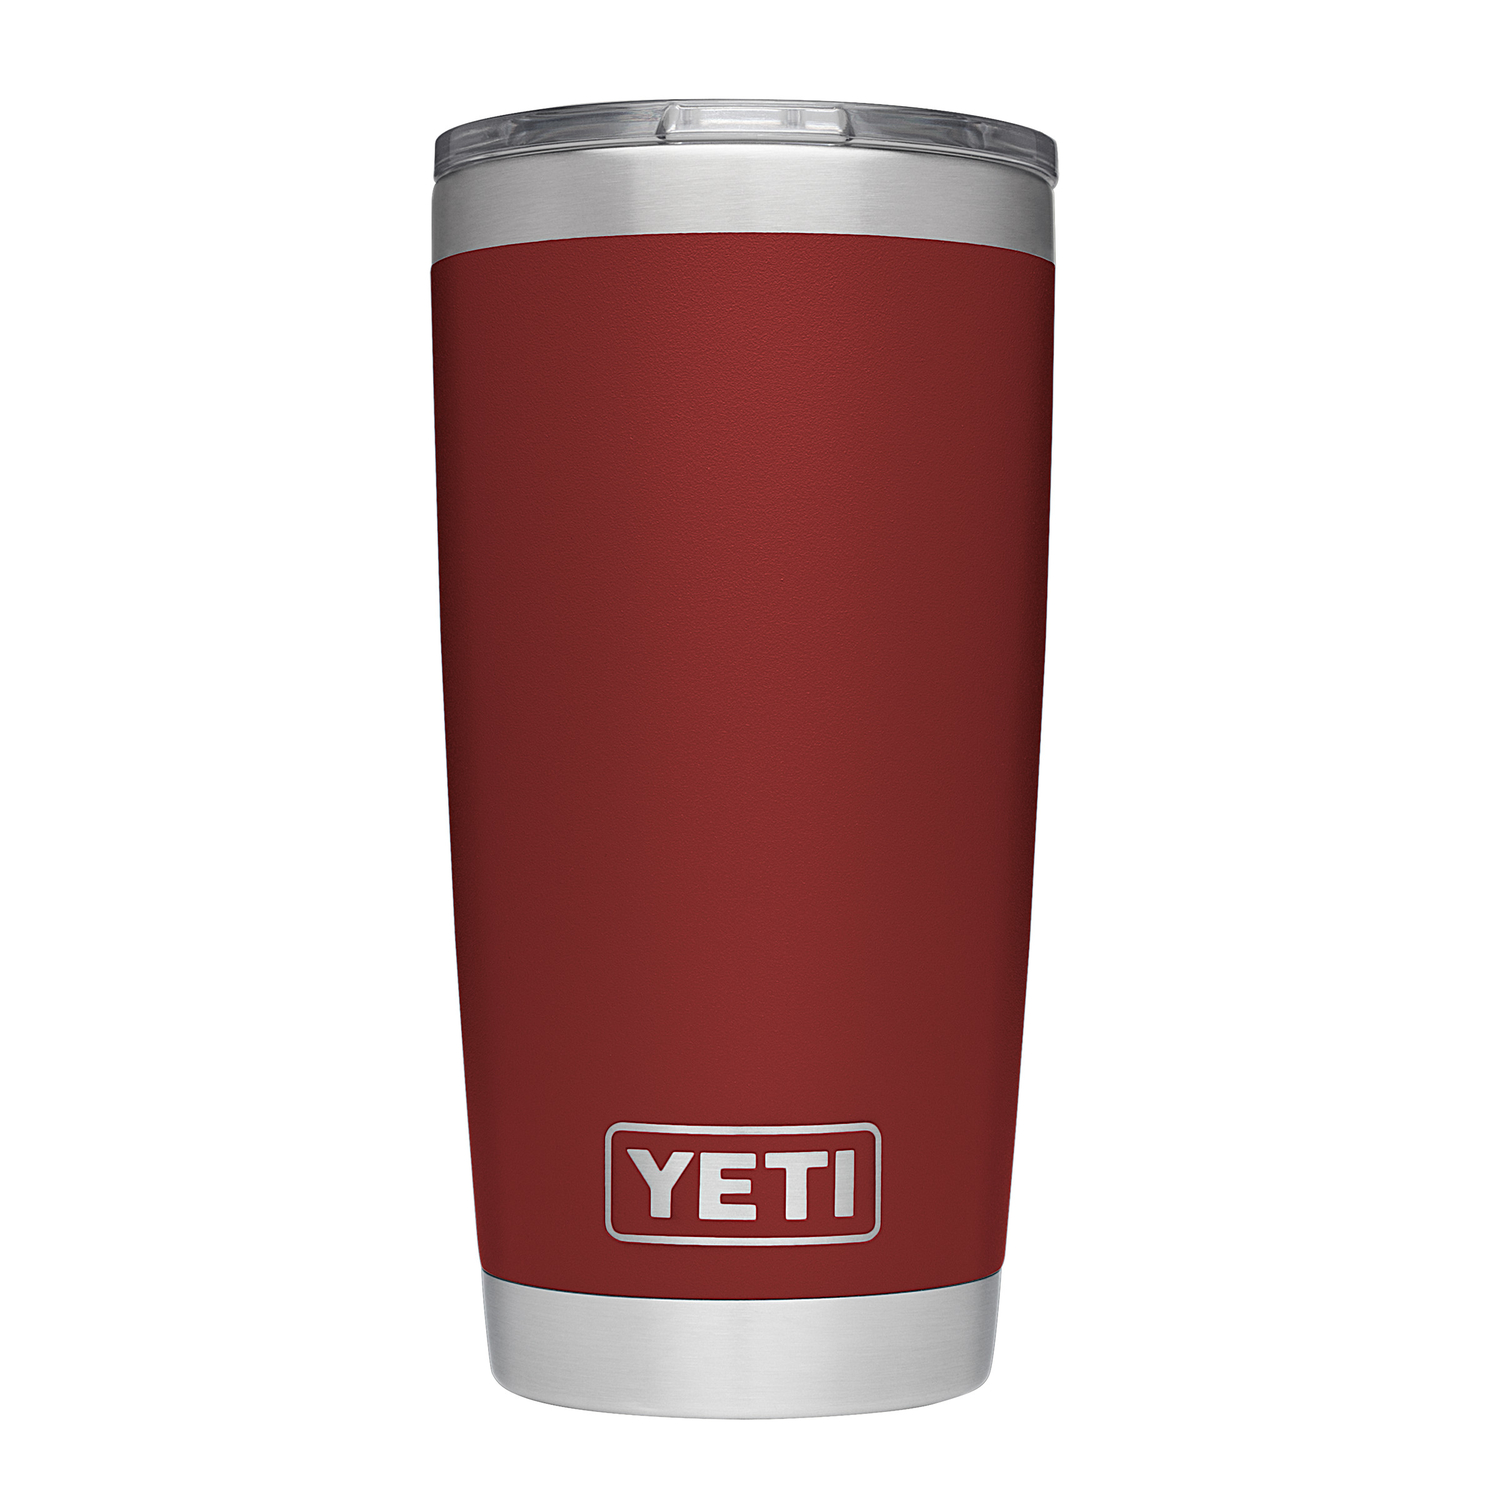 YETI  Rambler  Stainless Steel  Brick Red  Double Wall Tumbler  BPA Free 20 oz.